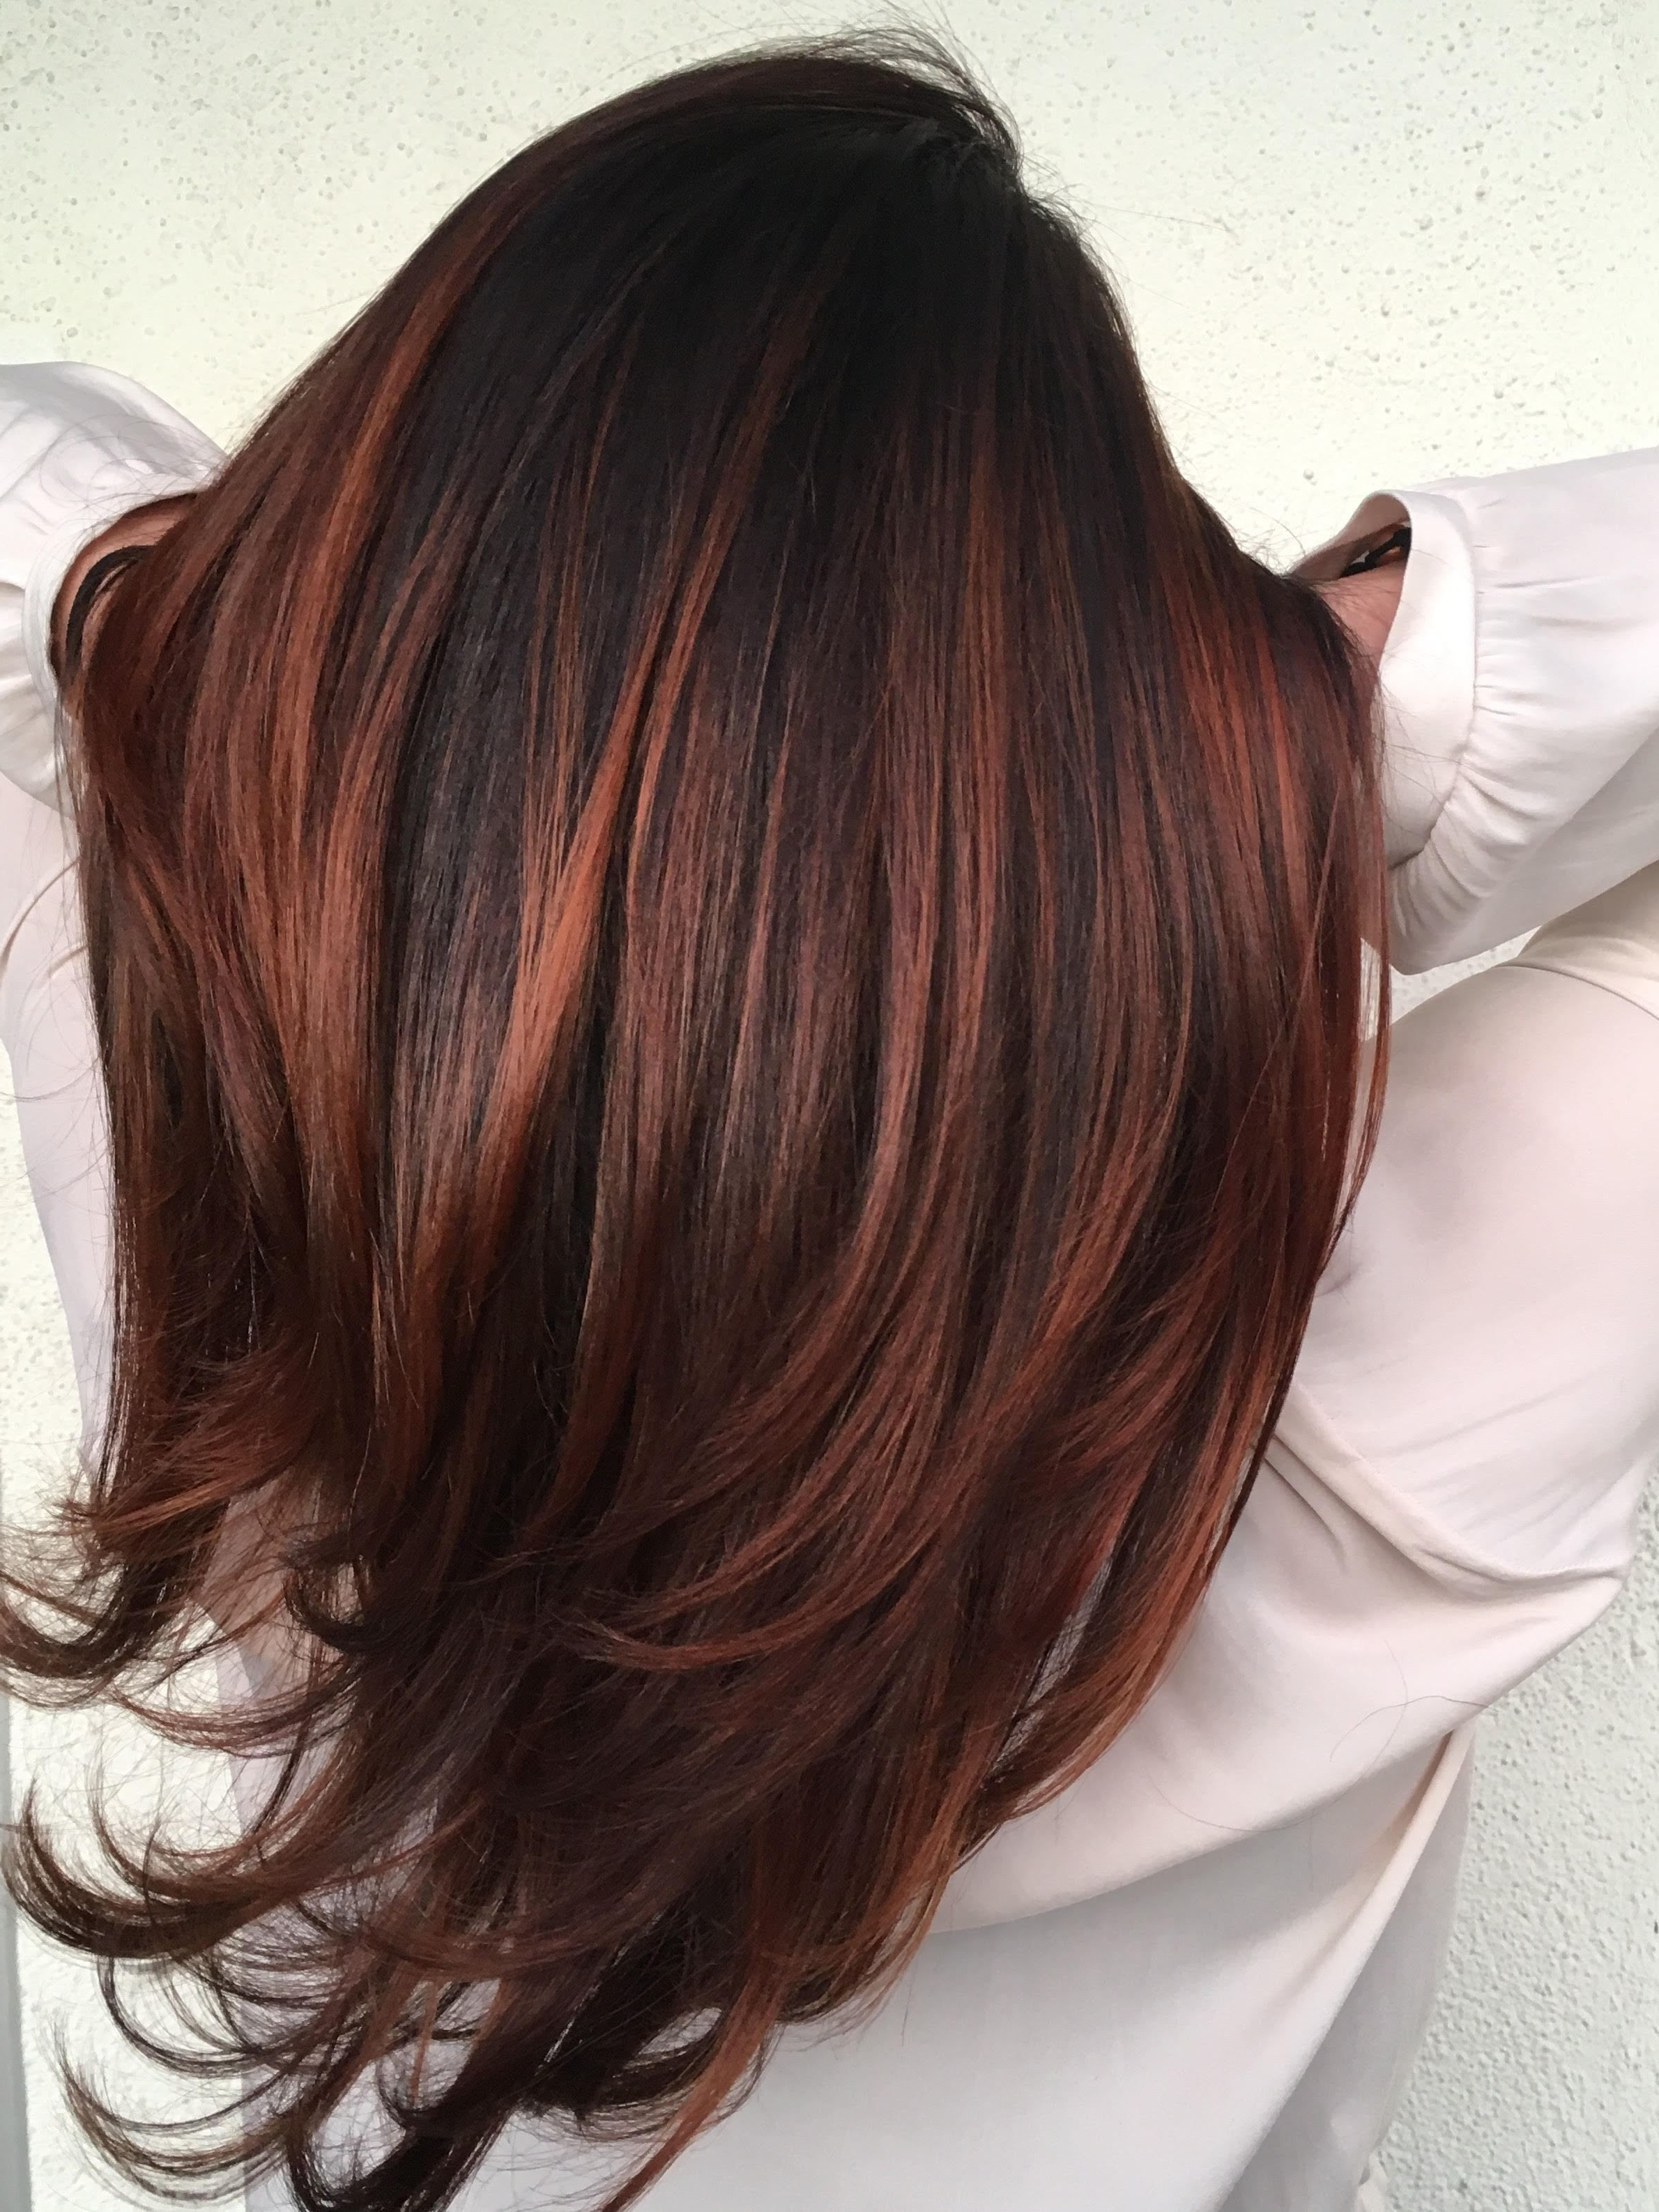 45 Hair Color Ideas For Brunettes For Fall Winter Summer | Hair In Soft Auburn Look Hairstyles (View 2 of 20)